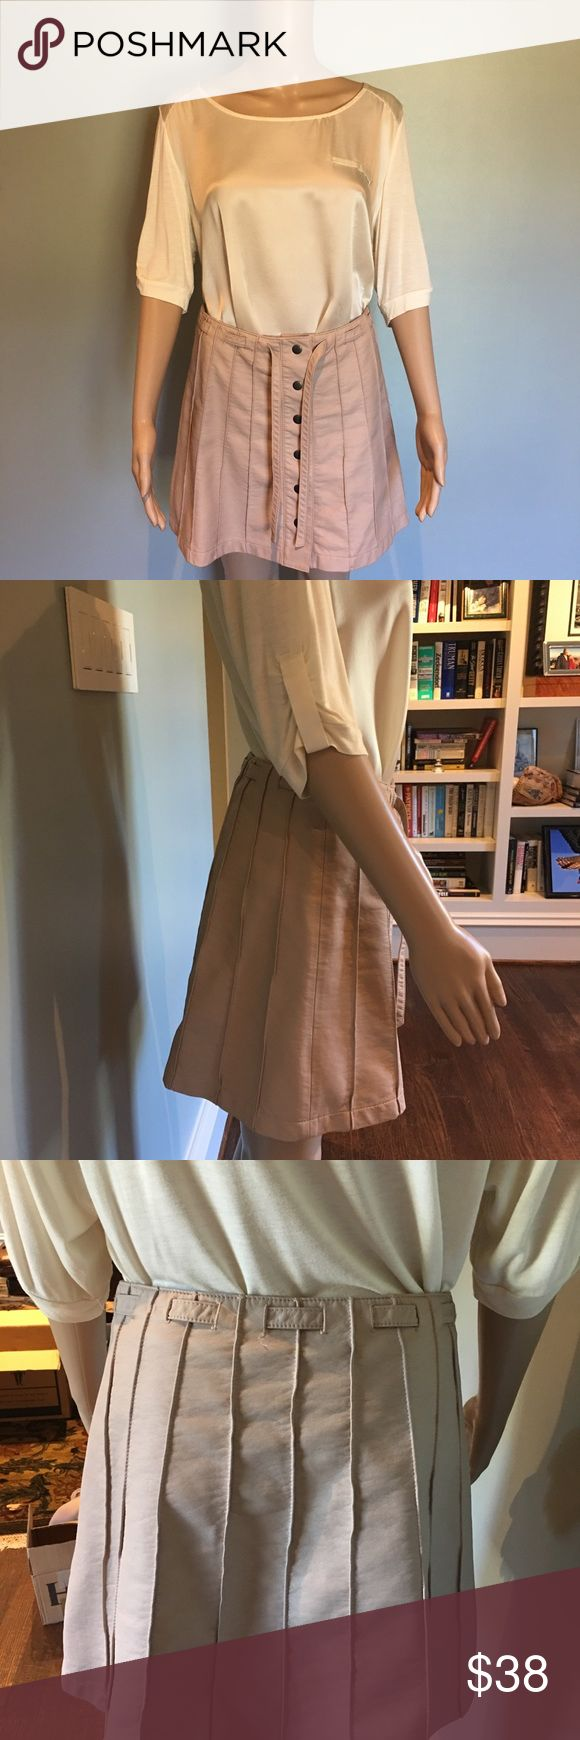 """Free People faux leather snap skirt Perfect condition. *vest & top also for sale; see listings* FIRM PRICE  Macy's: """"No closet staple is more covetable than the feminine-meets-tough faux leather skirt, and Free People has upped the ante with its flattering version. A snap front adds retro-cool appeal, while stitched pleat-effect panels enrich the A-line silhouette with texture. Ties at waist, snap front, stitched pleat-effect panels, lined Approx. 15"""" from waist to hem based on a size 2…"""